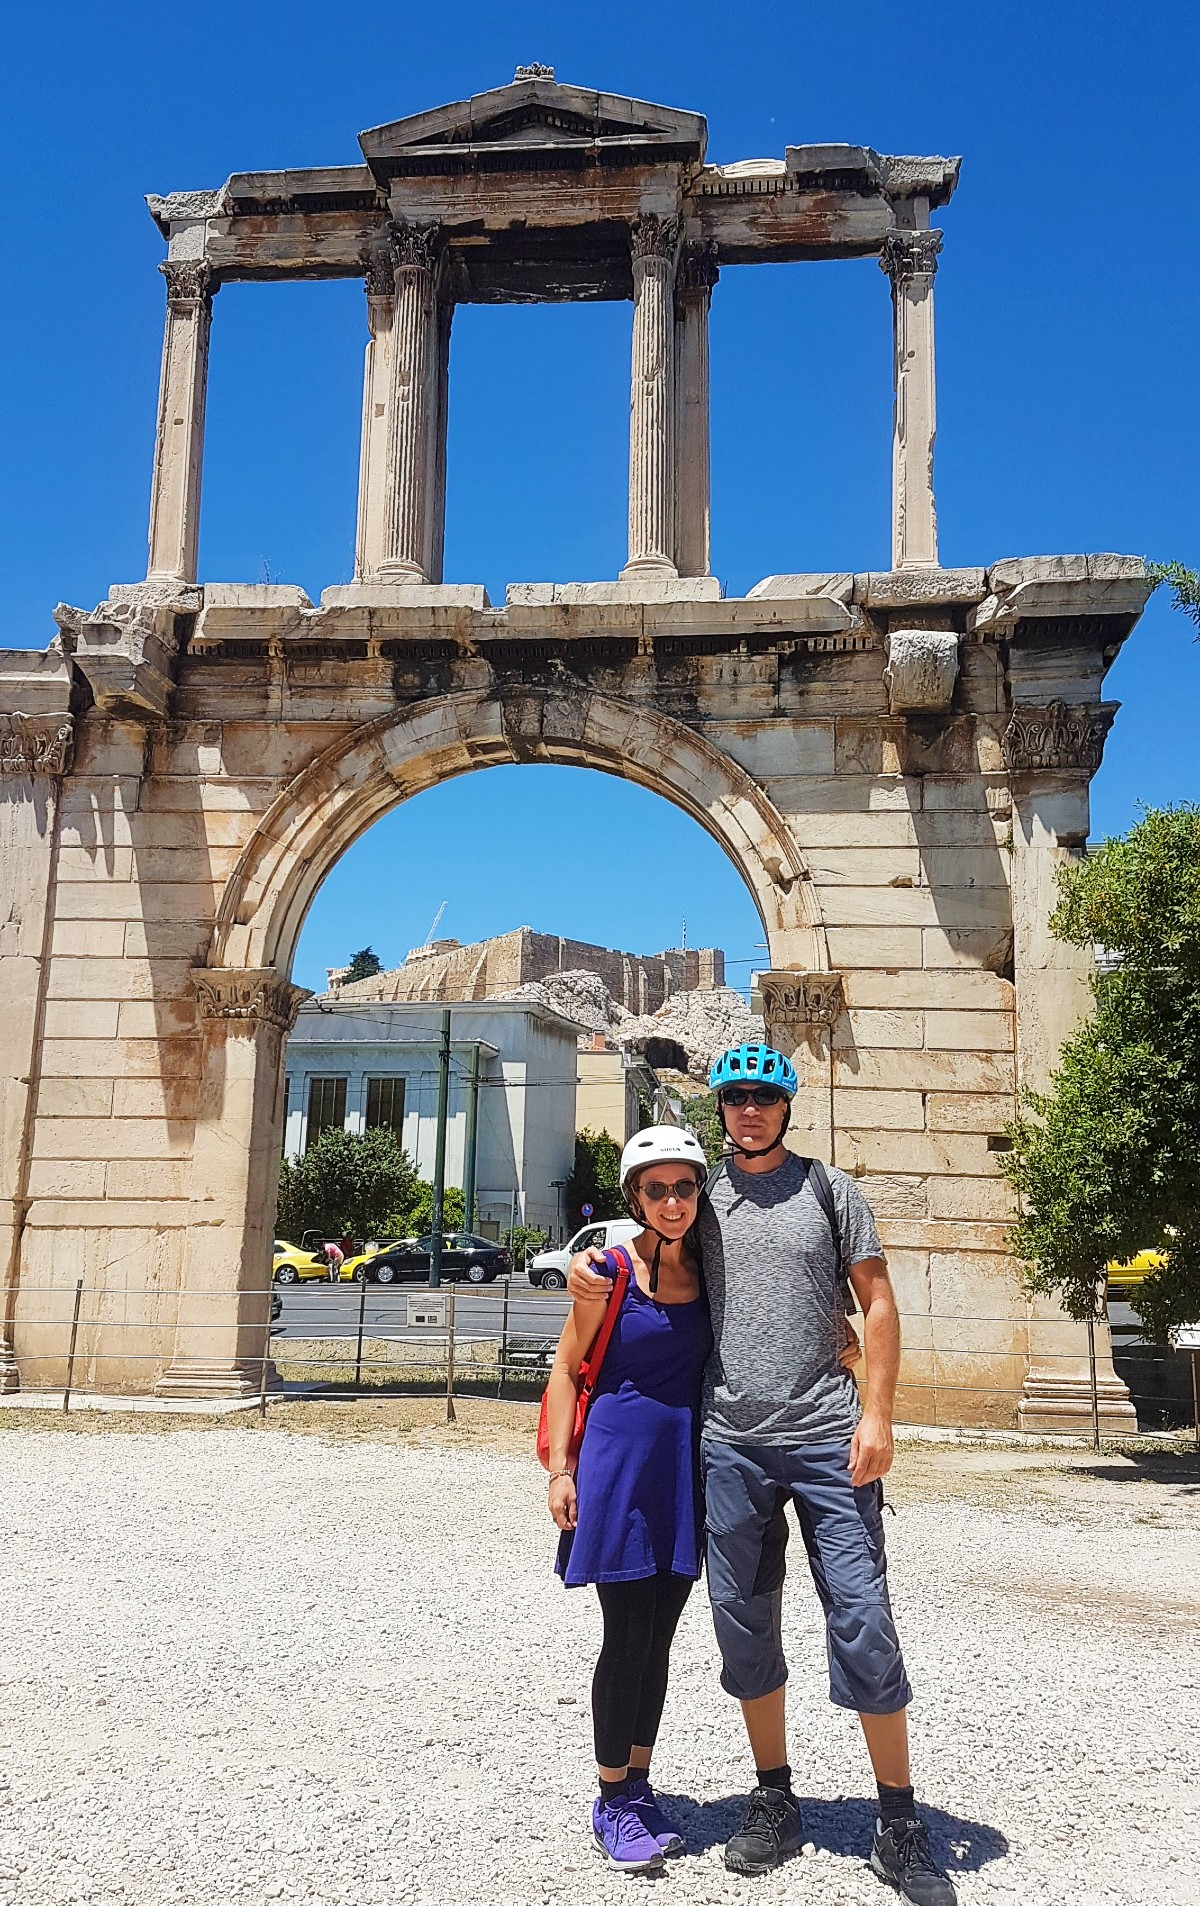 The majestic Hadrian's arch in Athens Greece